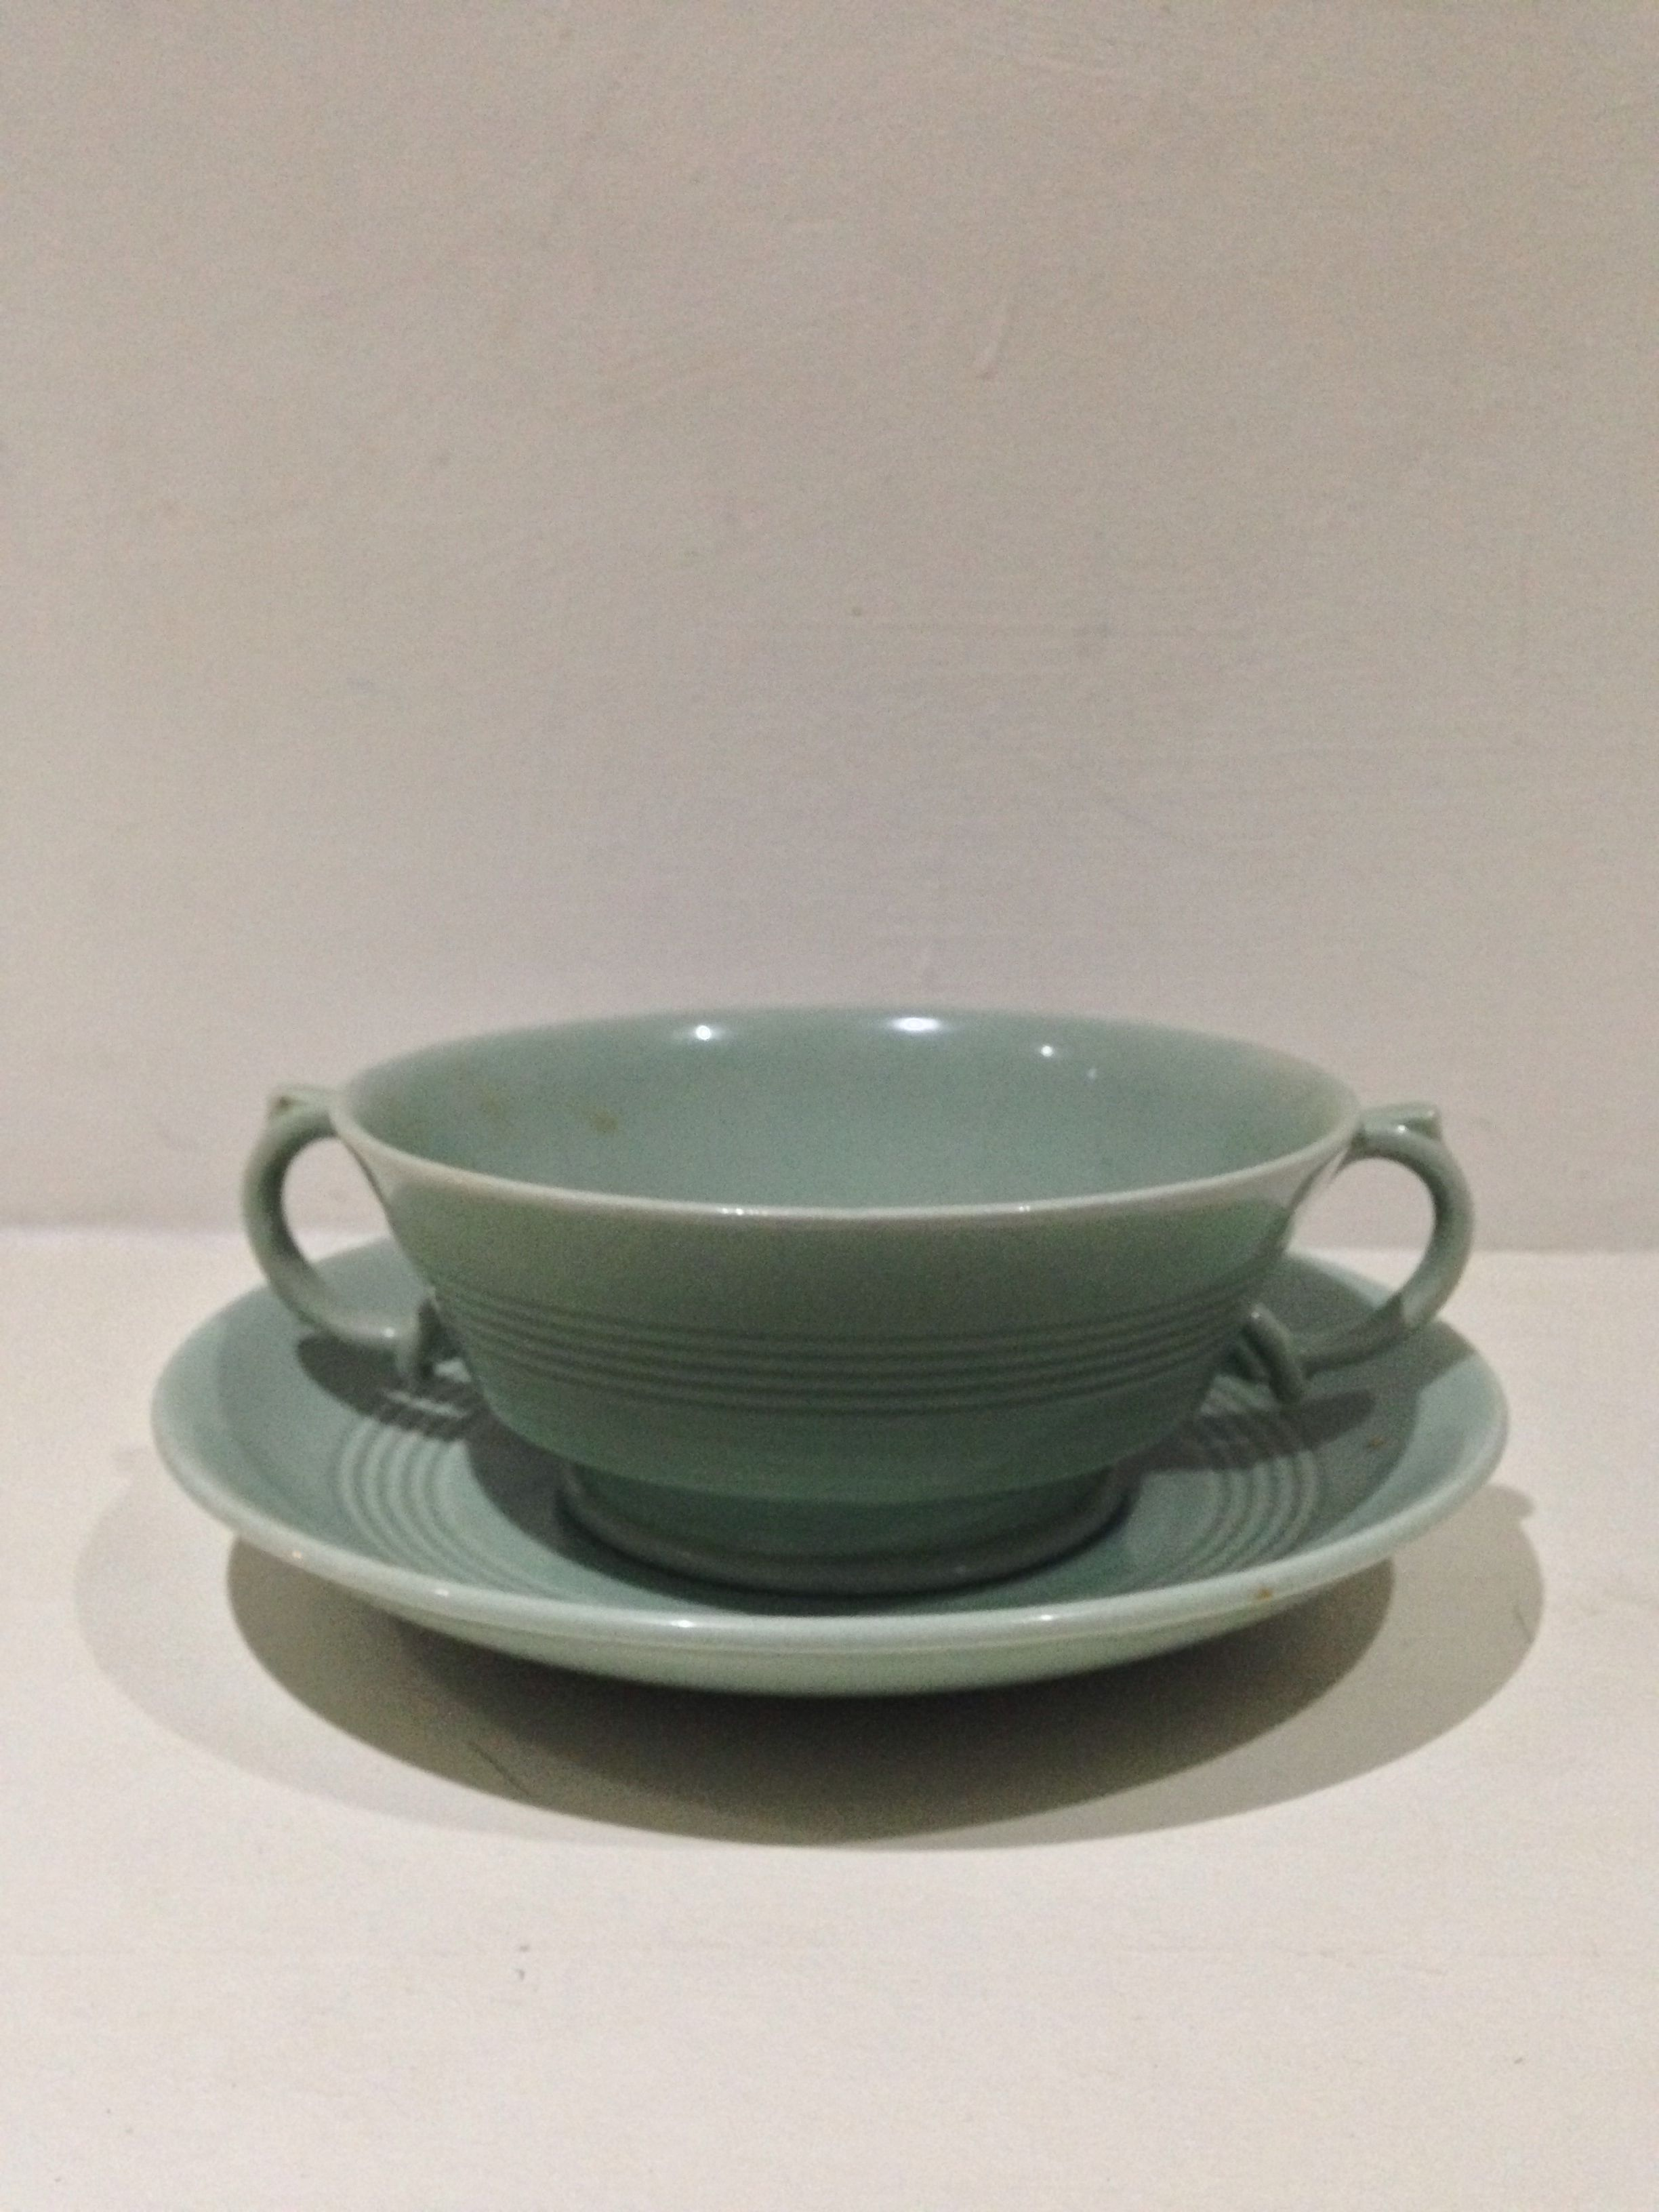 Beryl woods ware soup cup 1930s Collectible dishes